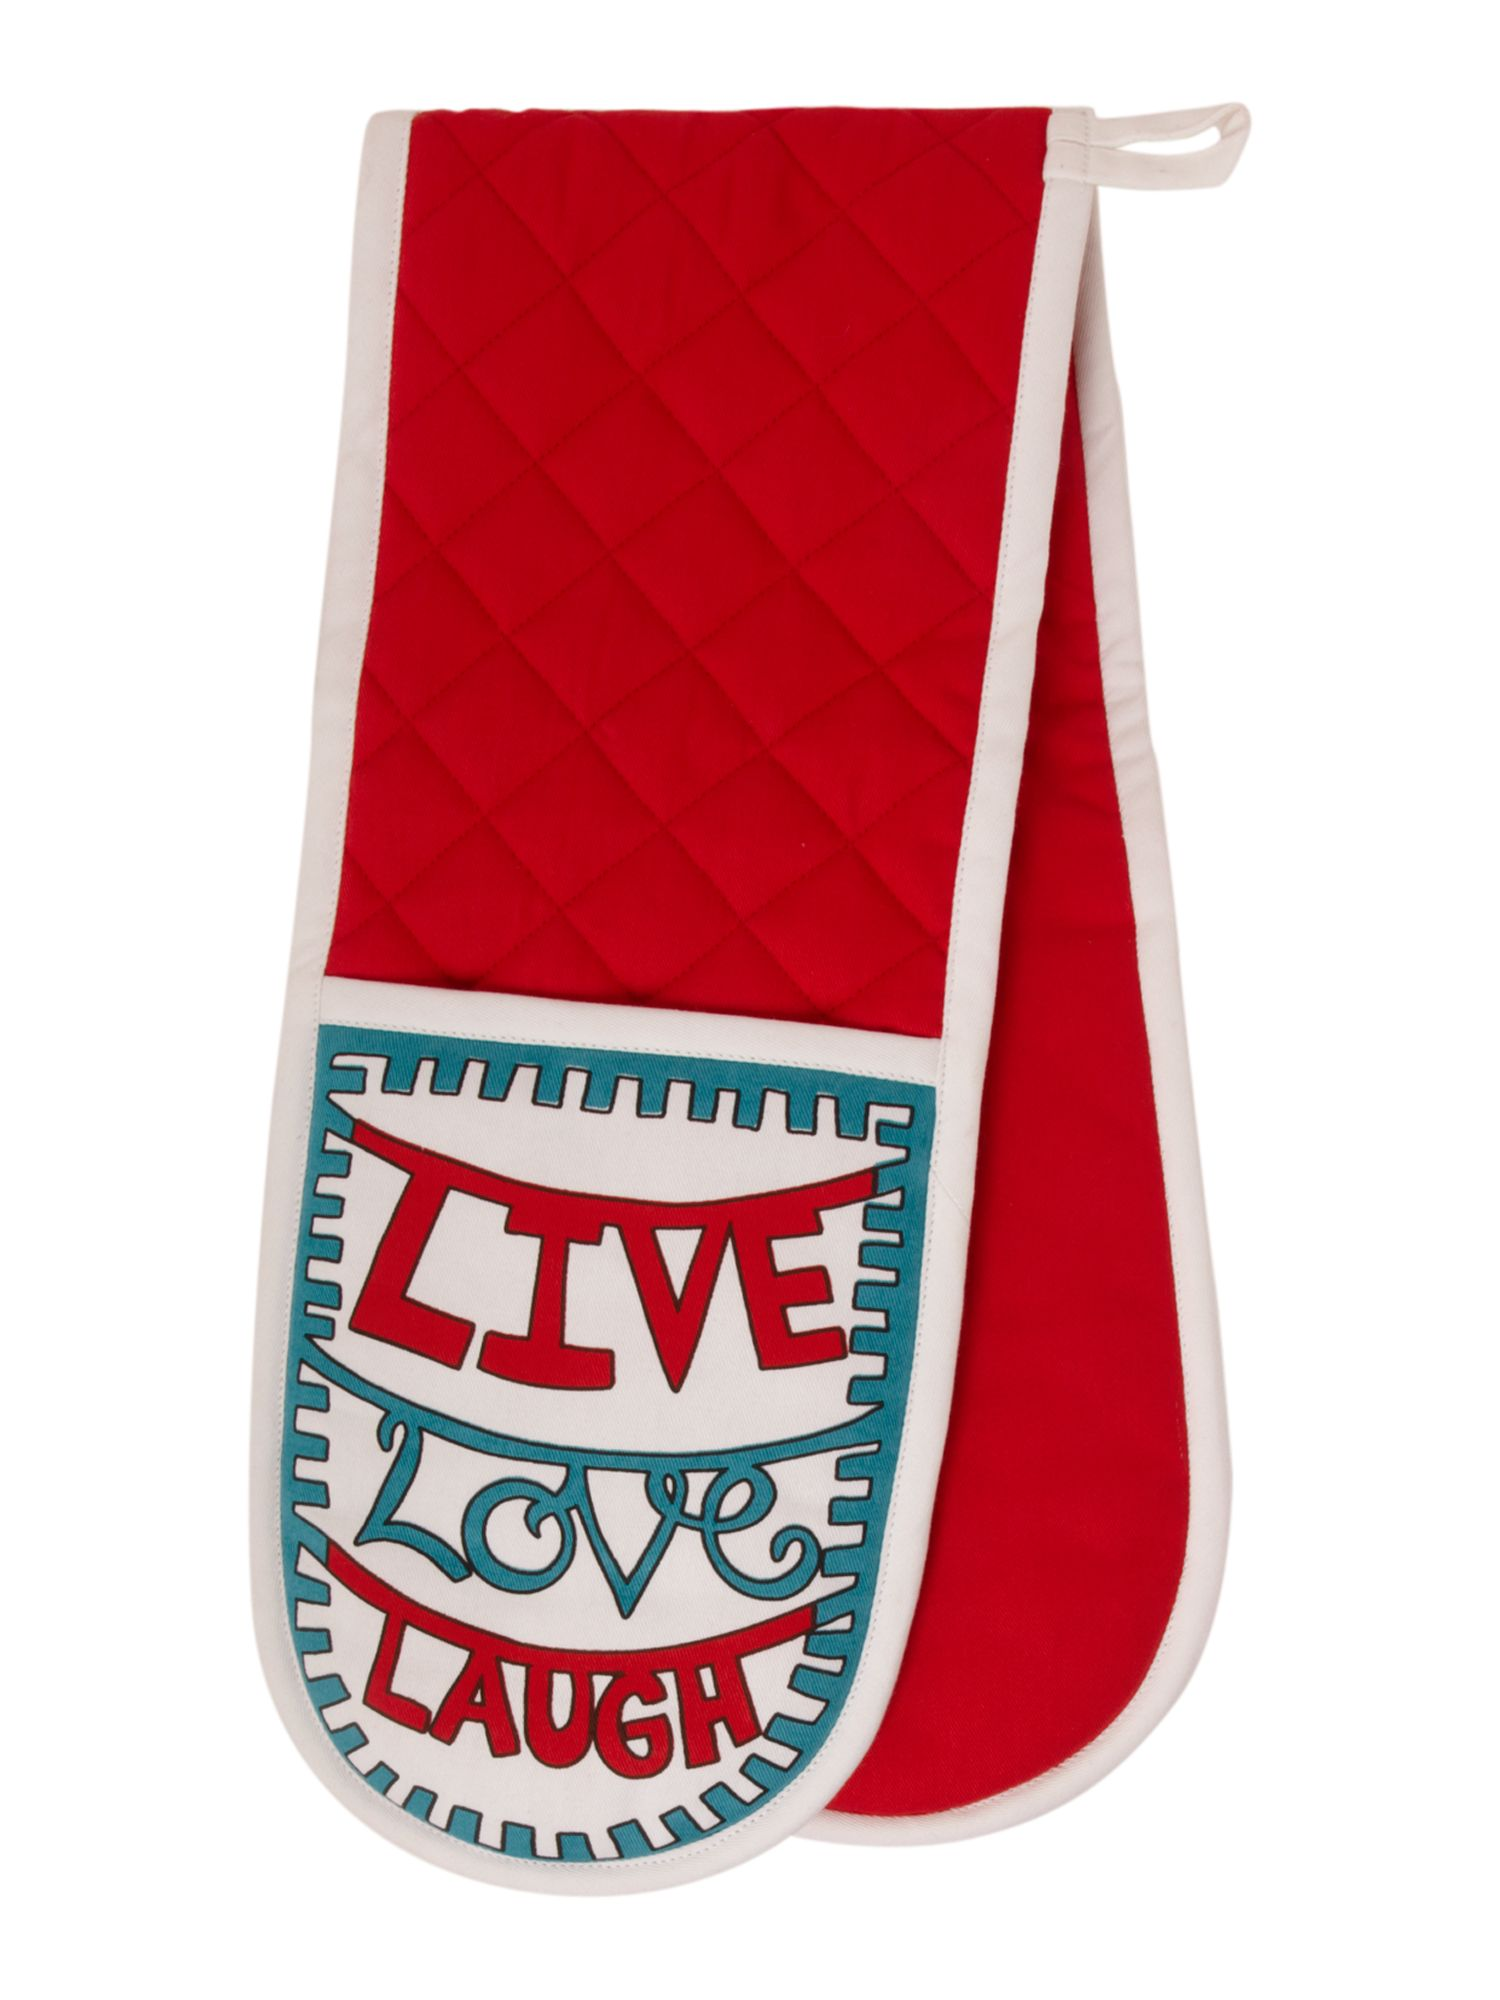 Live laugh love double oven glove